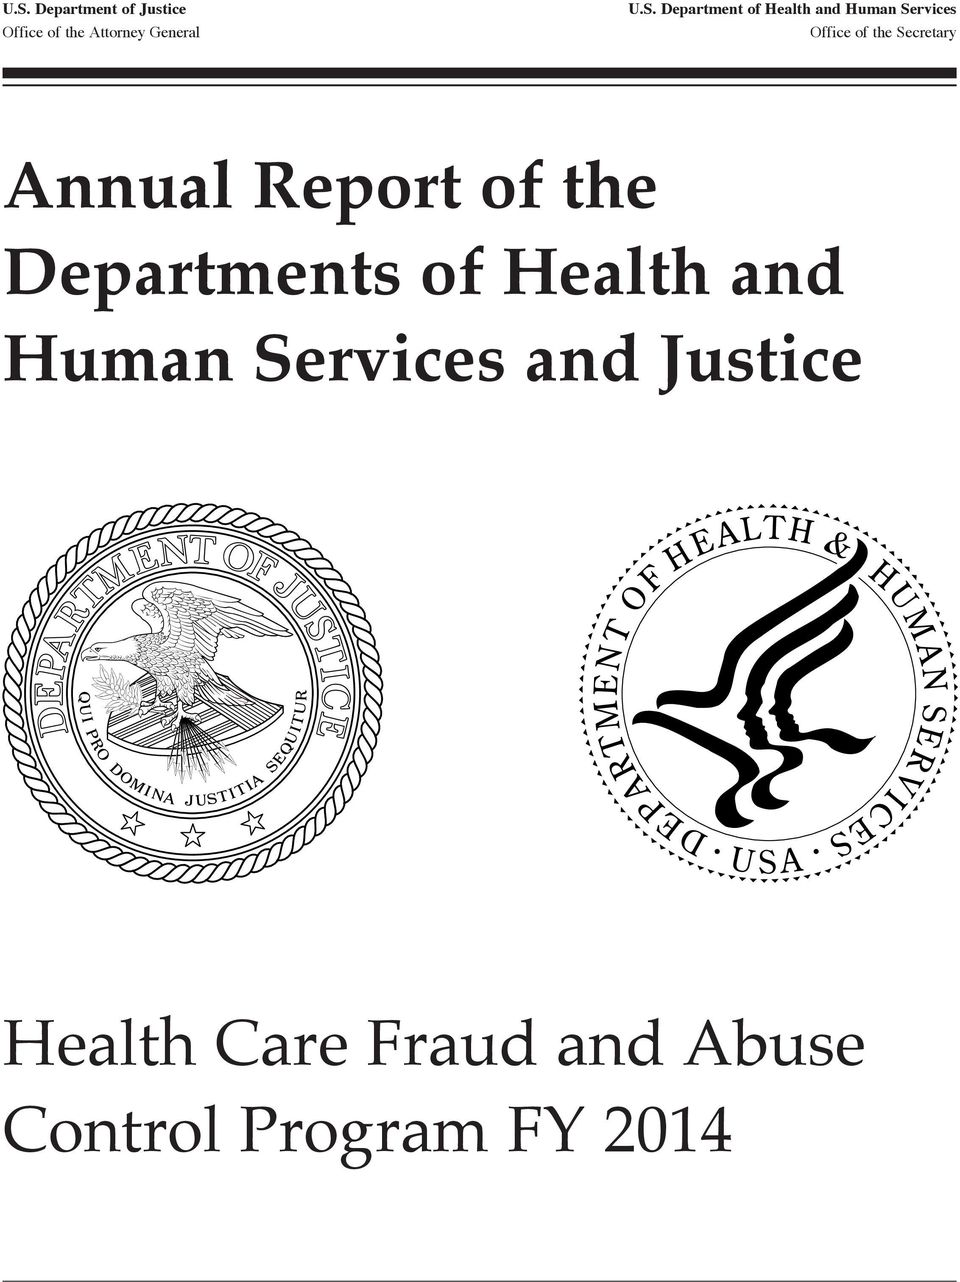 Secretary Annual Report of the Departments of Health and Human